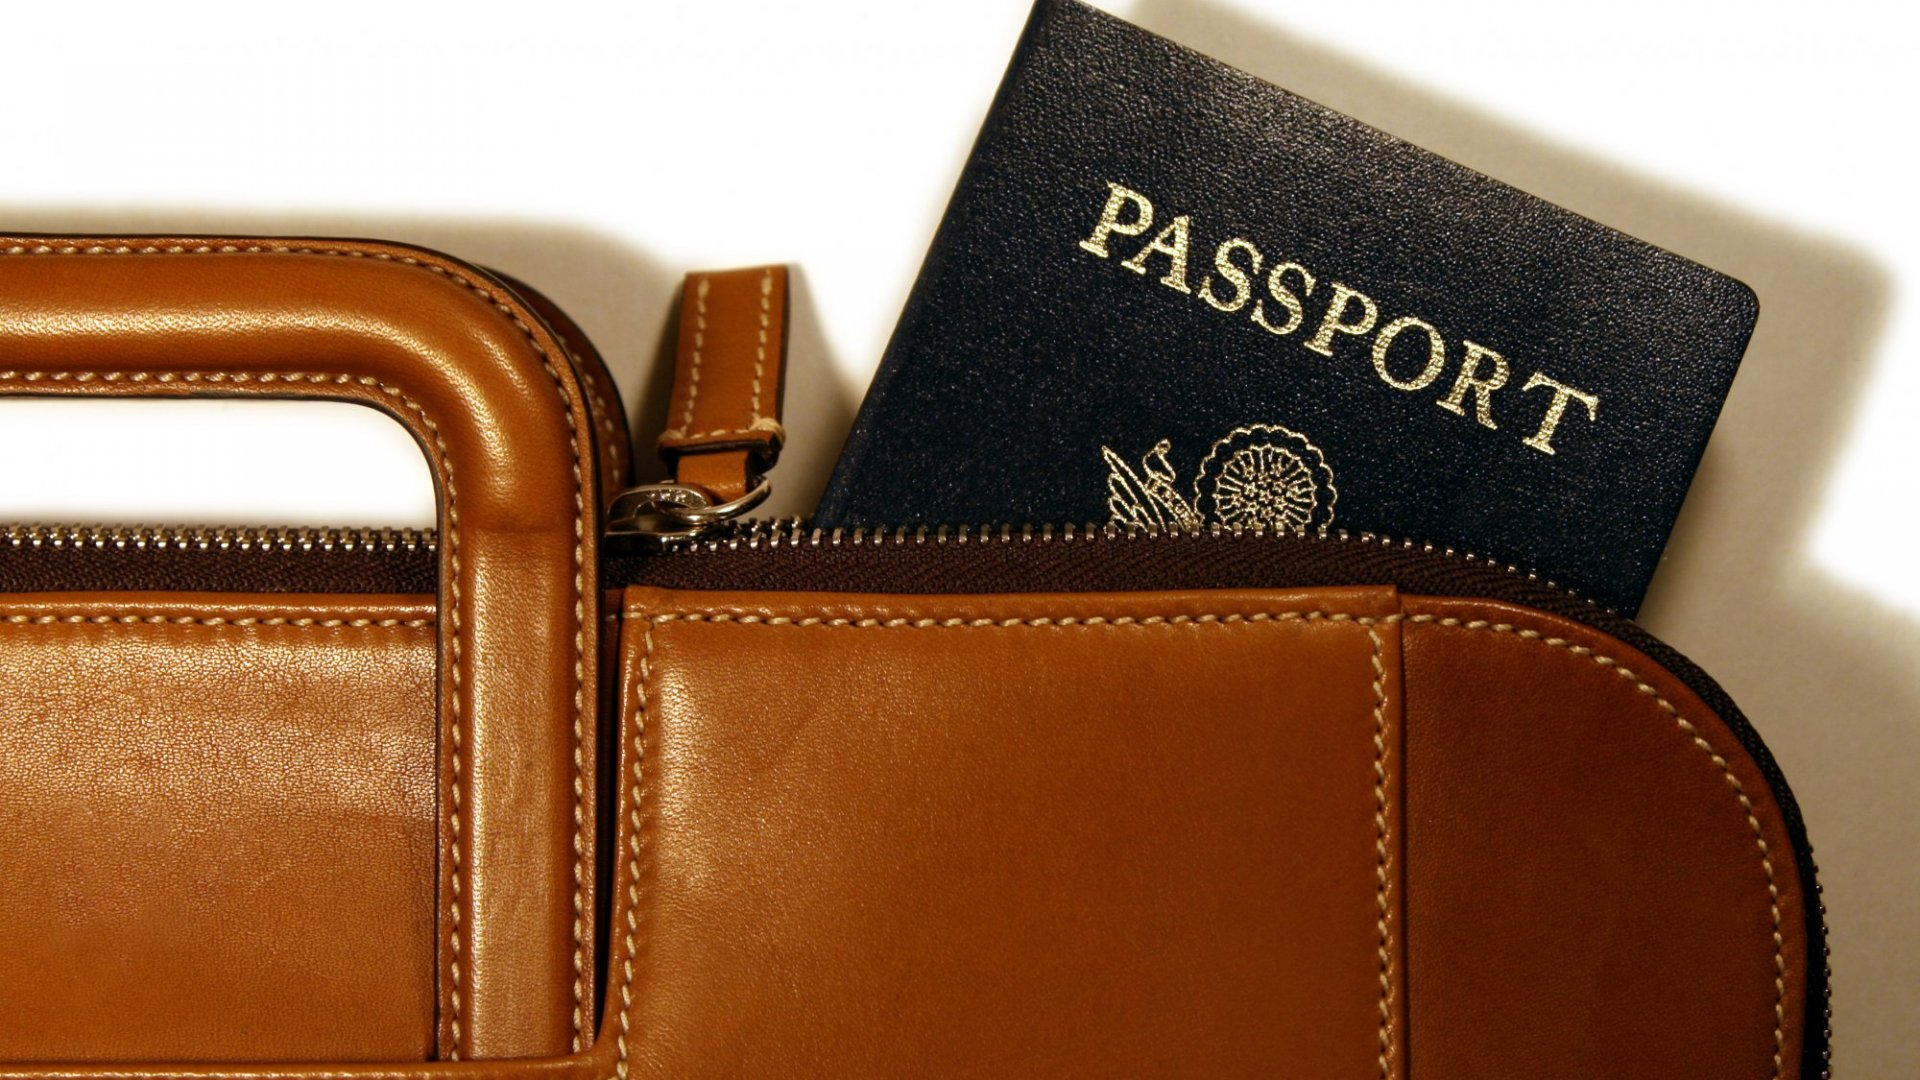 20 Things Every Business Traveler Should Check Before Their Trip